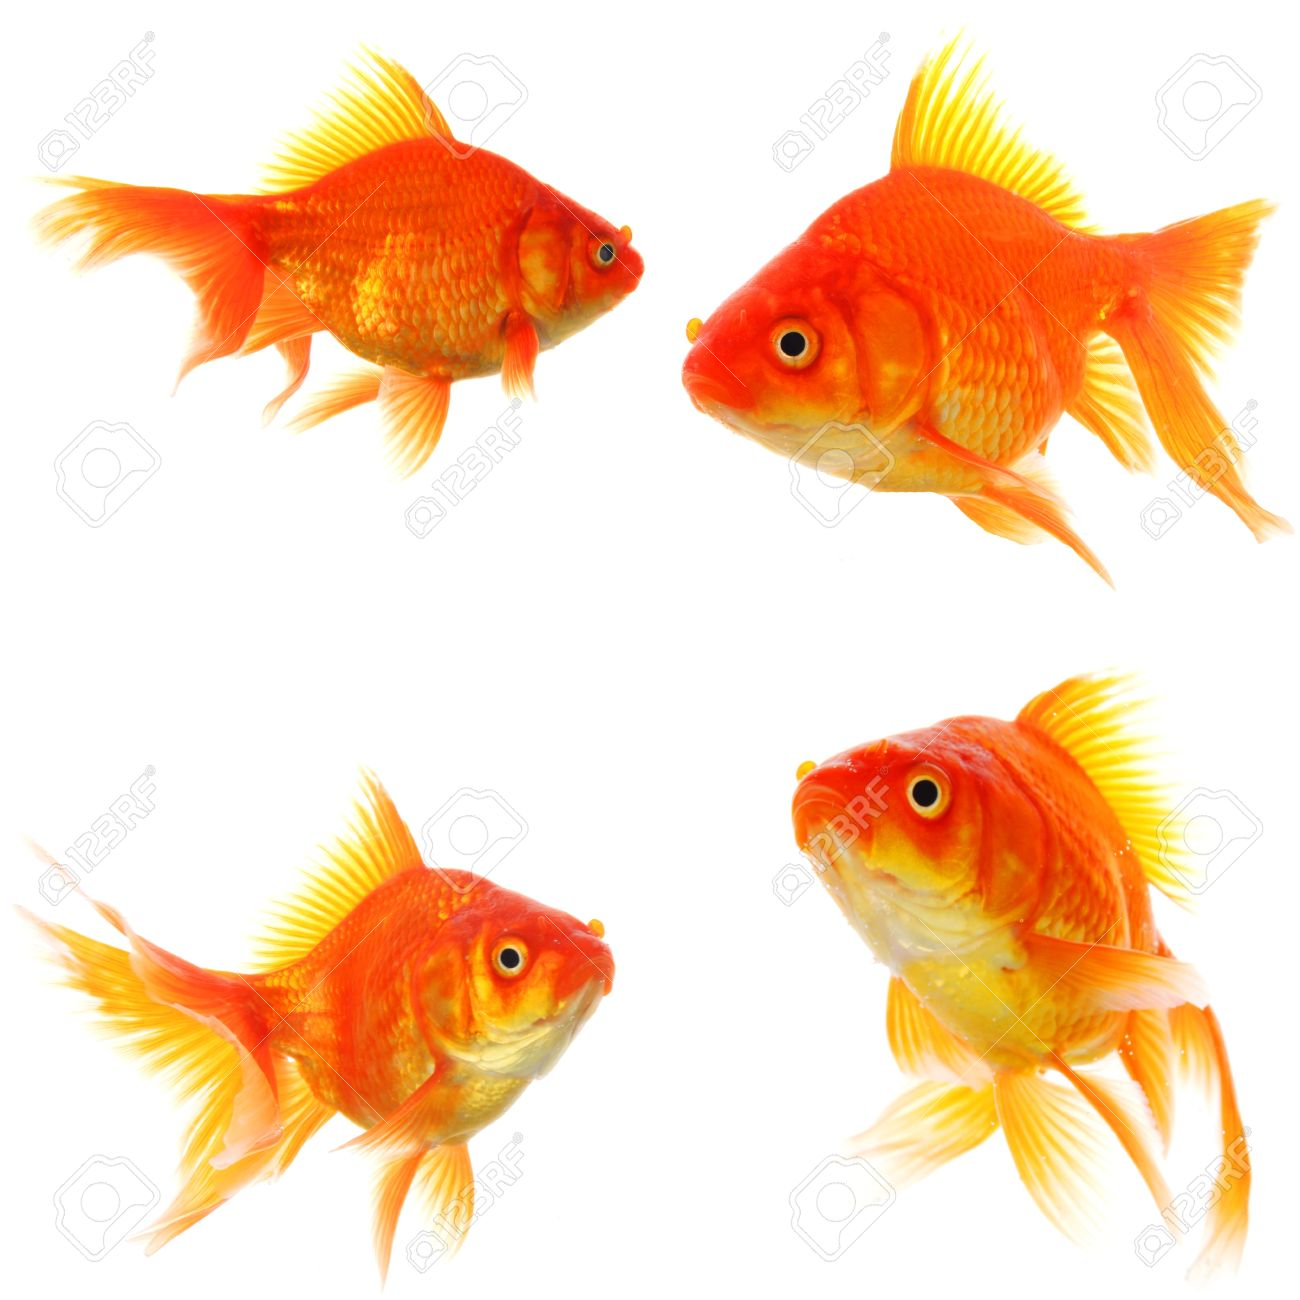 goldfish collection or group or fishes isolated on white background Stock Photo - 9011763